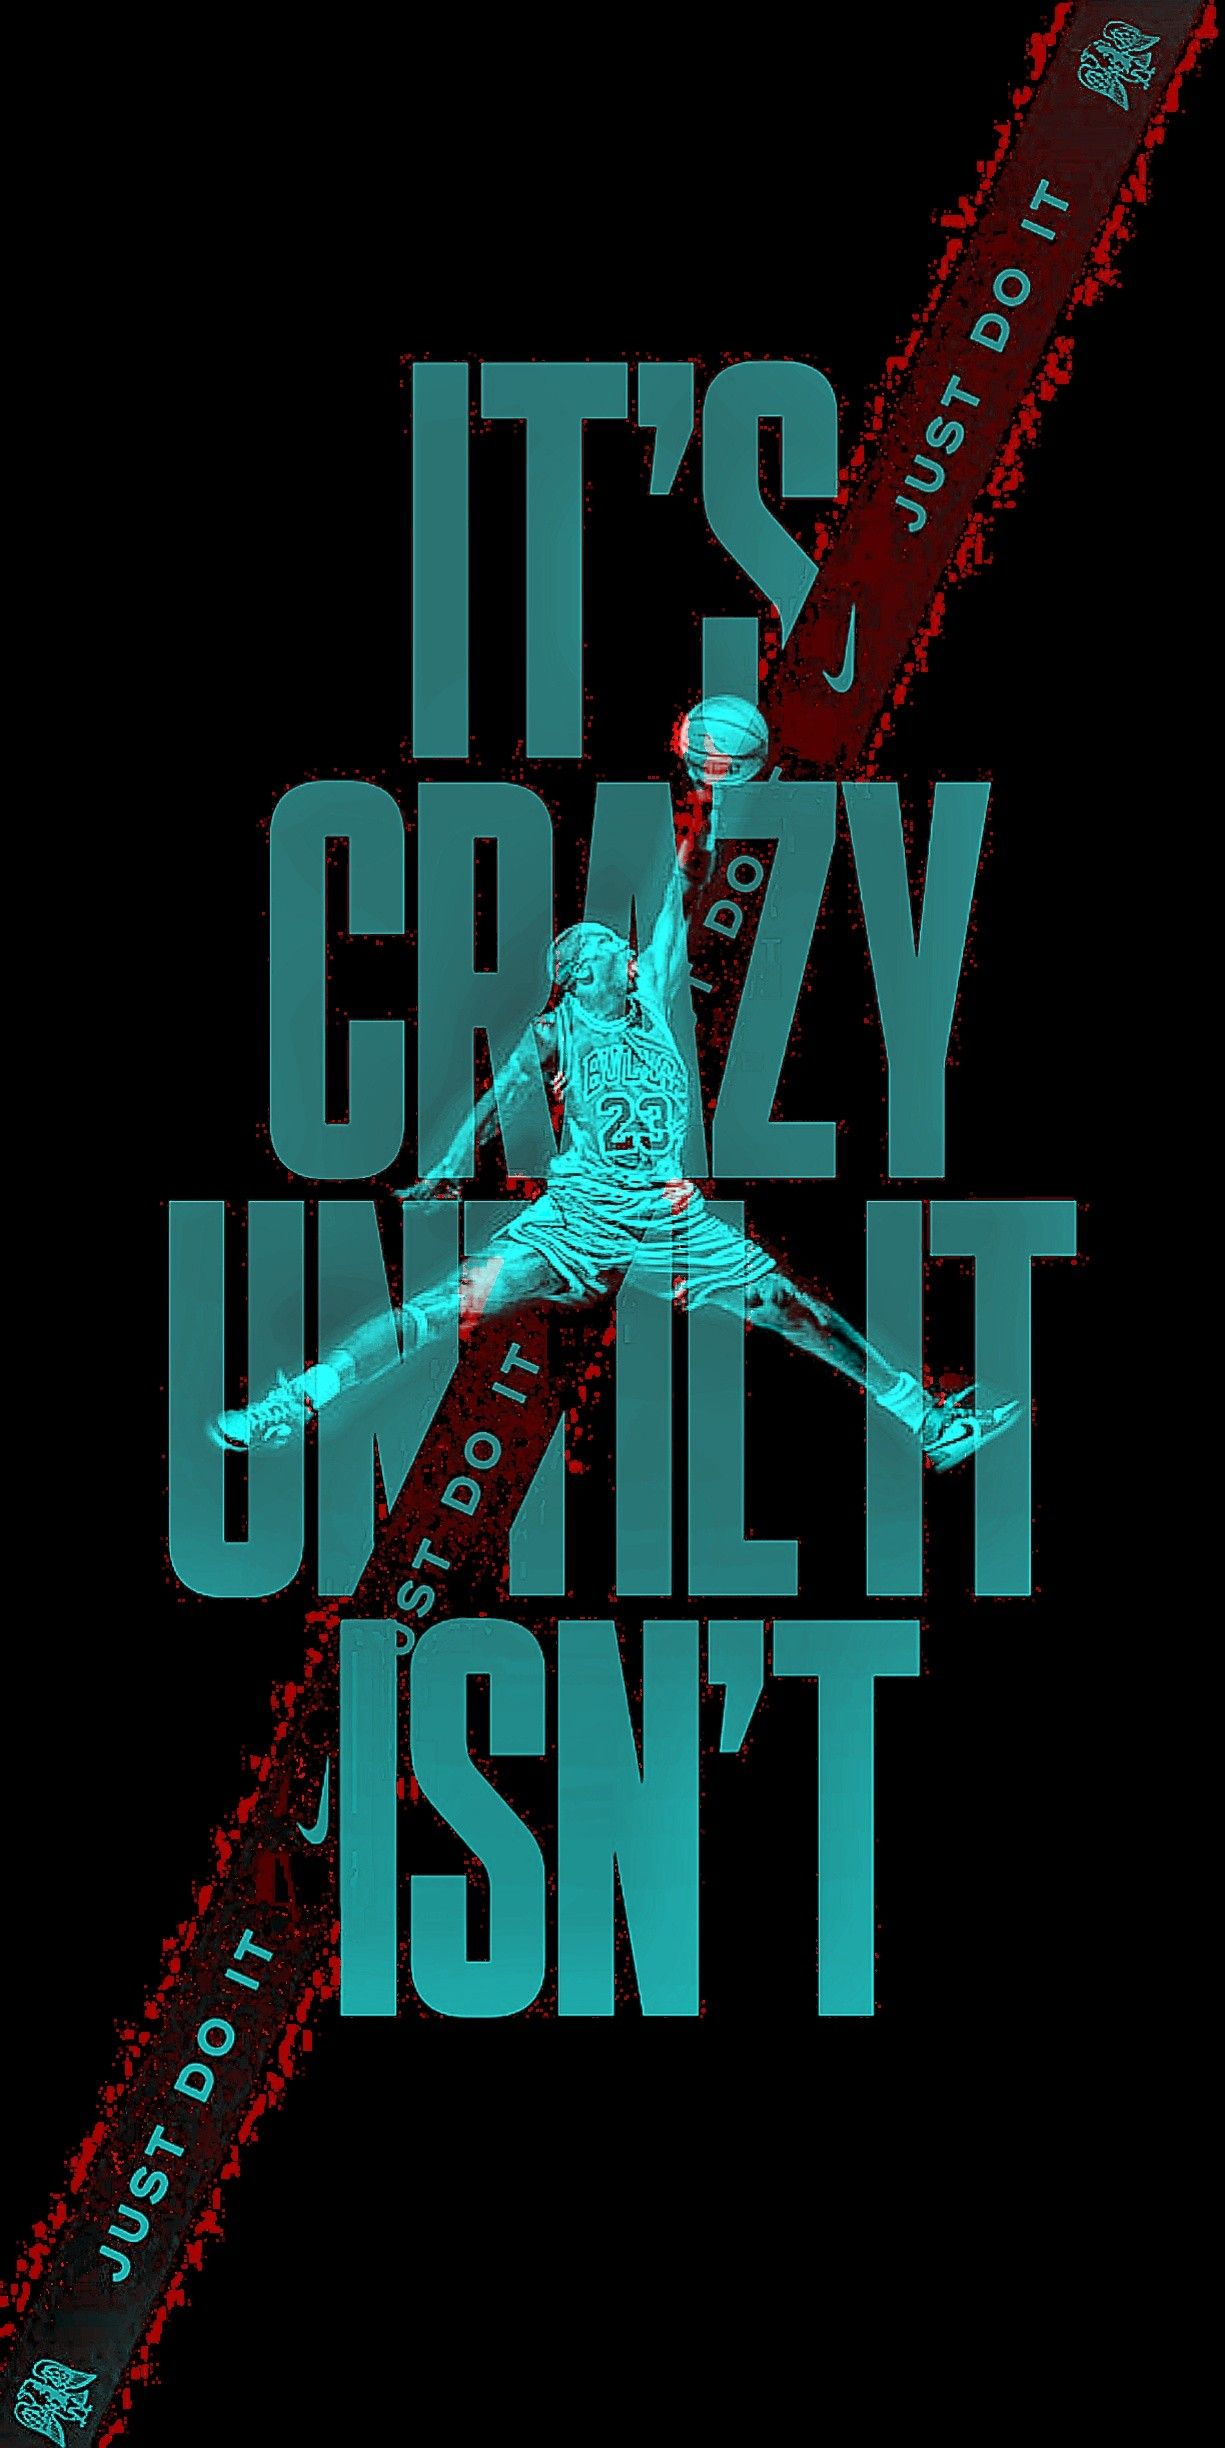 Pin By Hooter S Designs On Nike Wallpaper Jordan Logo Wallpaper Nike Wallpaper Hypebeast Iphone Wallpaper